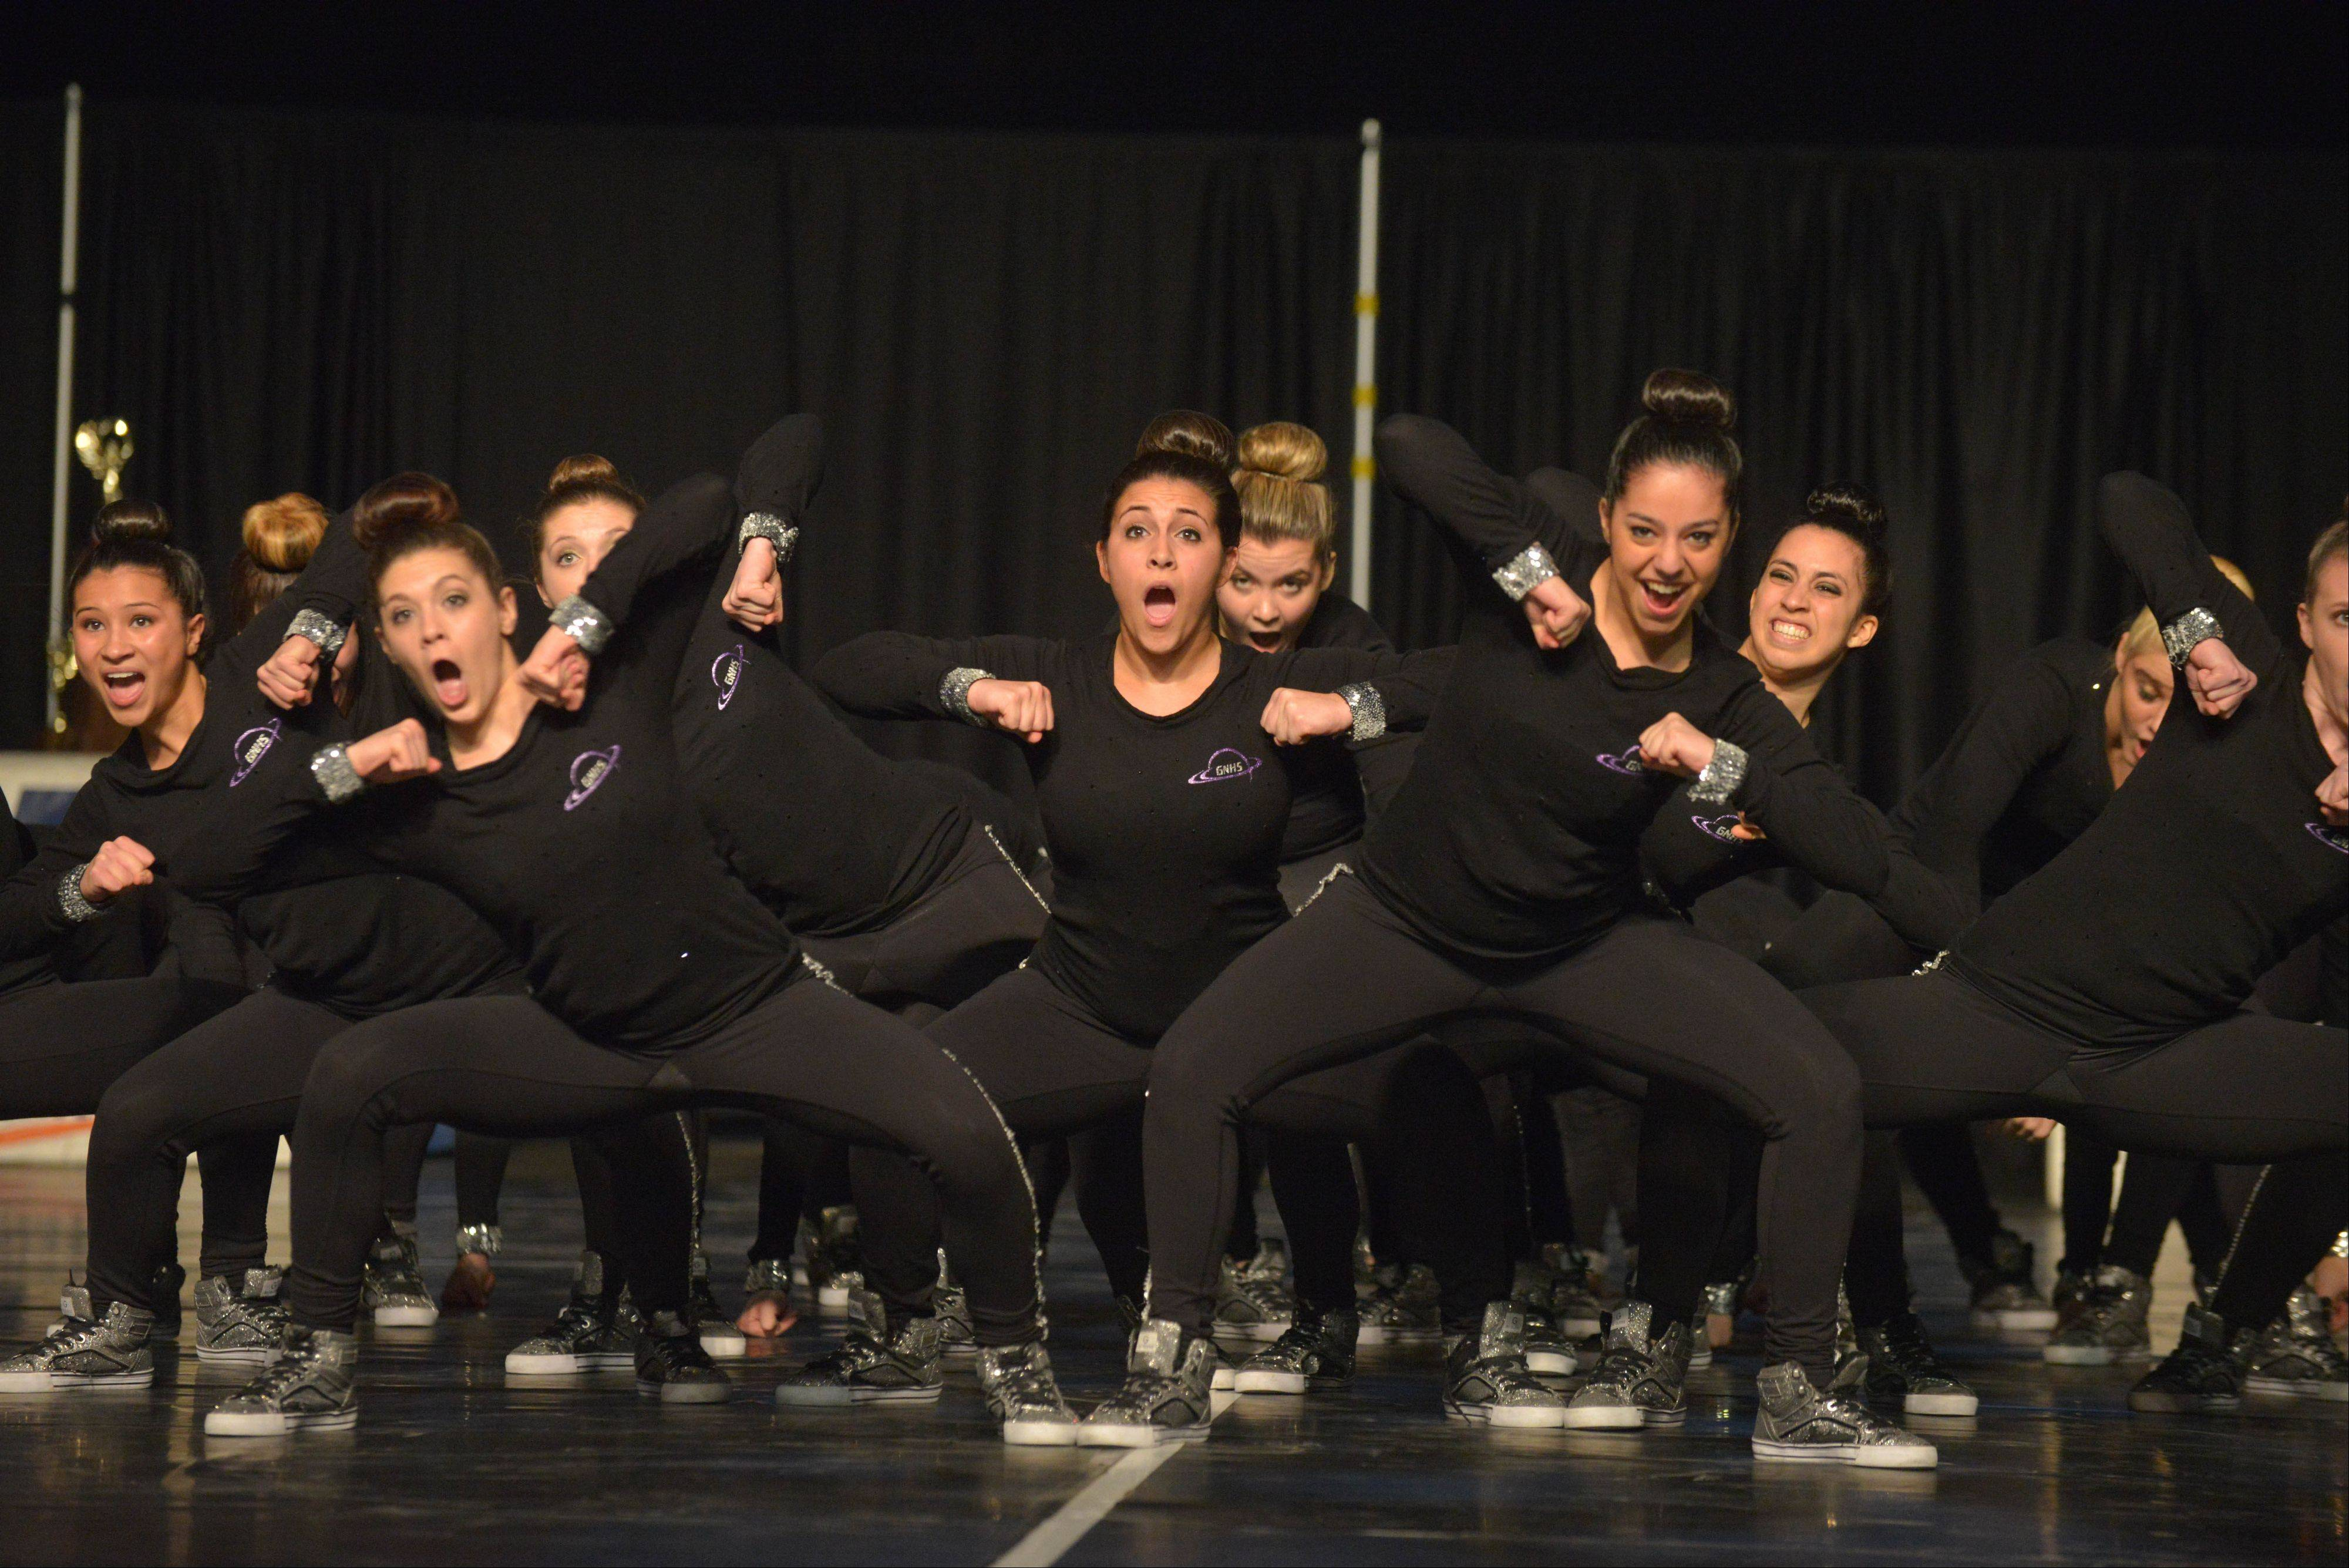 Glenbard North High School took part in the IHSA Dance State Final at U.S. Cellular Coliseum in Bloomington Saturday. 90 teams vied for state champion at this event.